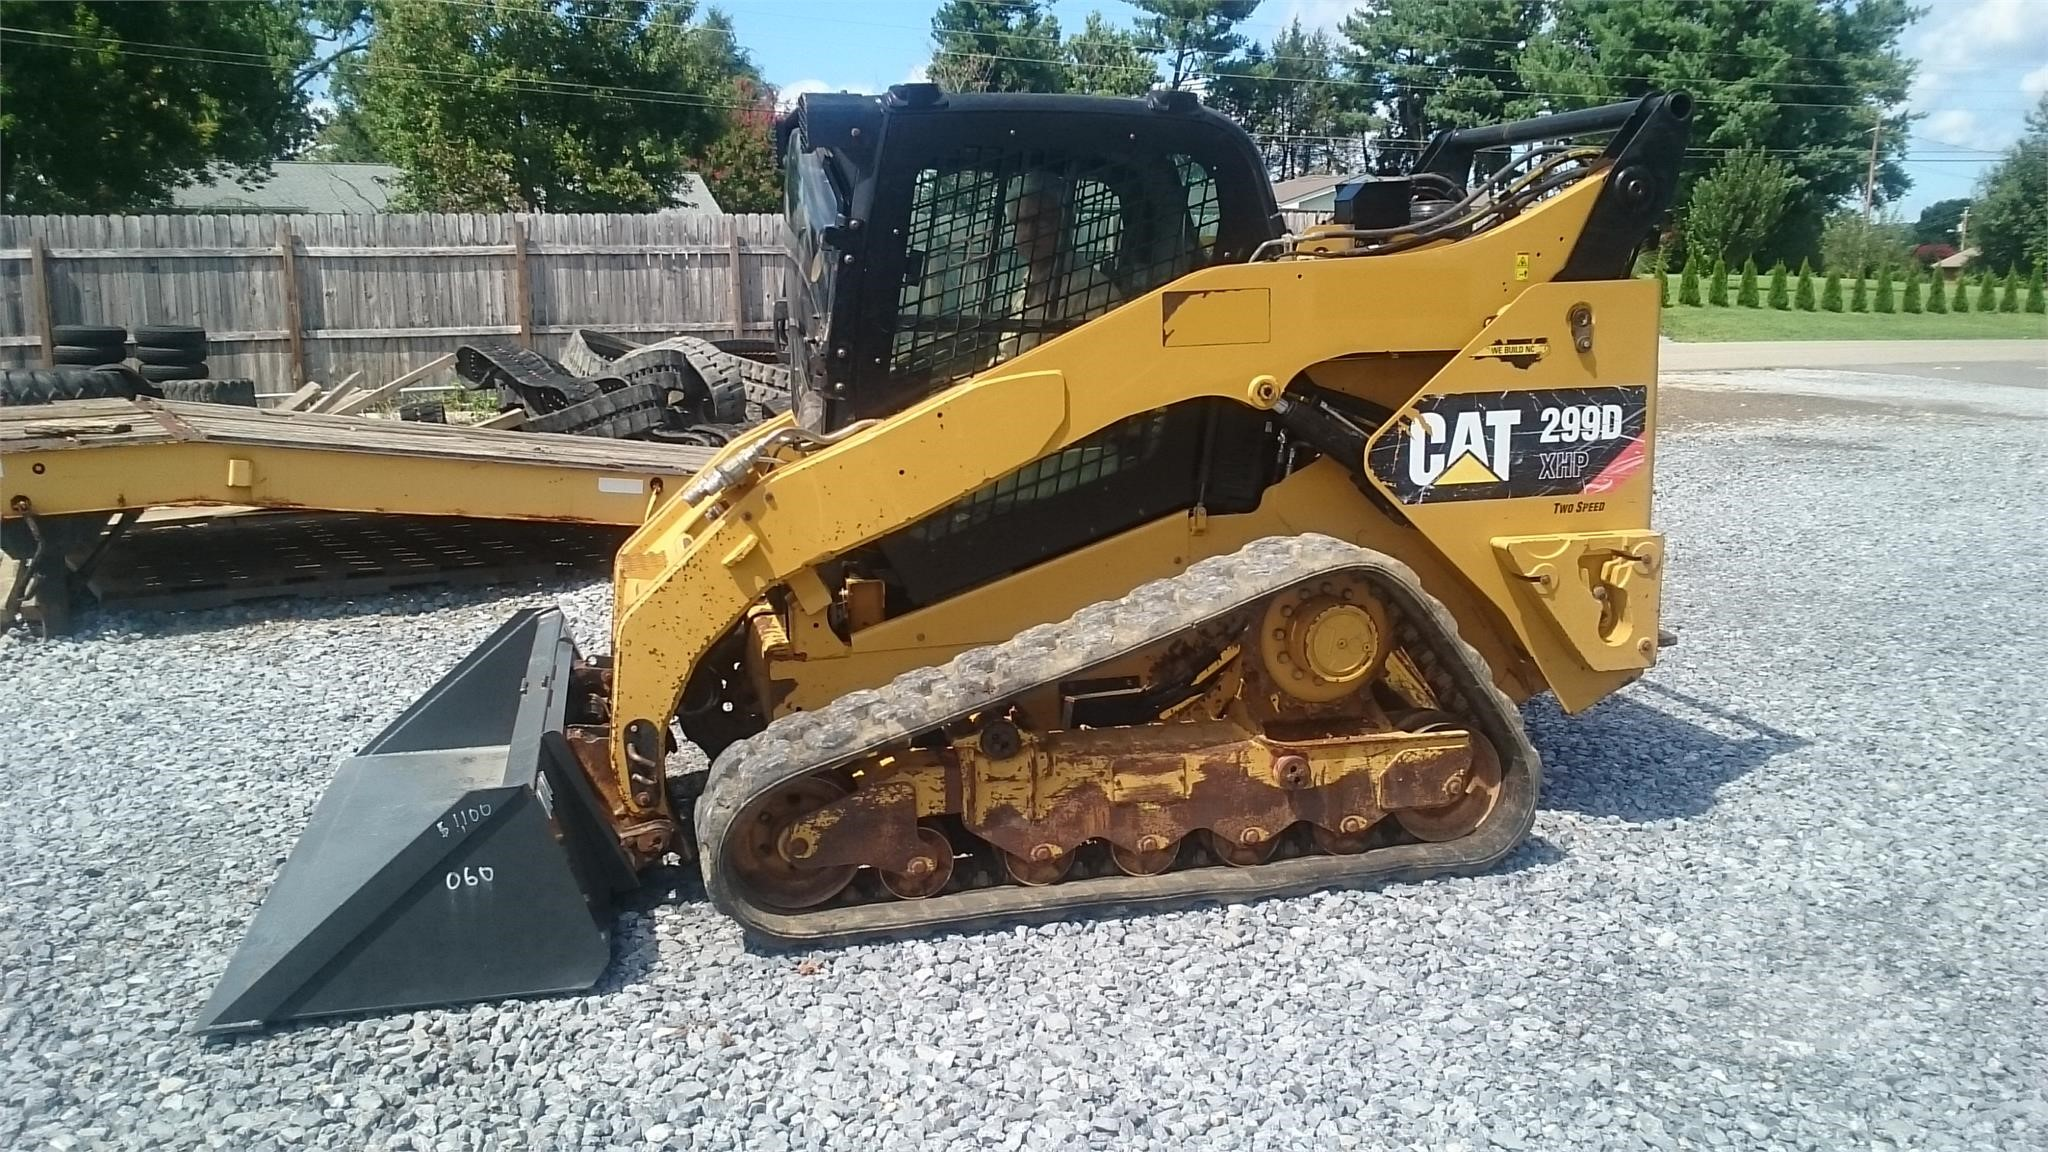 2013 CATERPILLAR 299D XHP FORESTRY MACHINE HIGH FLOW AUXILIARY HYDRAULICS ENCLOSED CAB WITH DEMOL